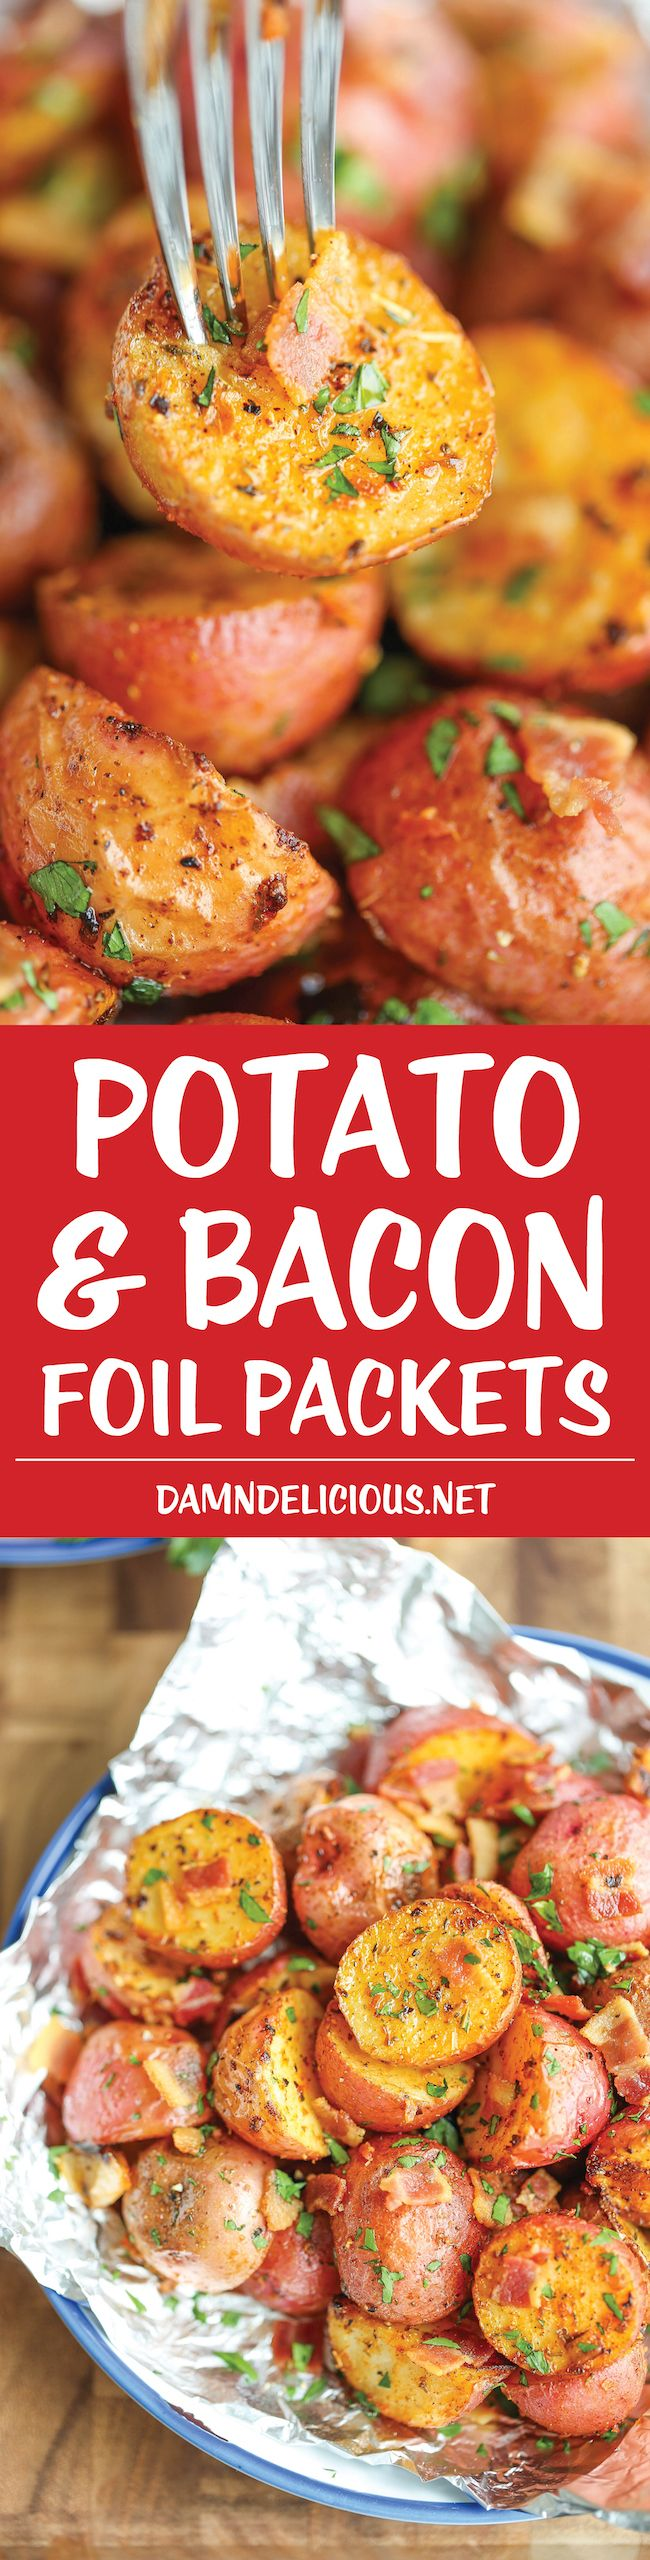 Potato And Bacon Foil Packets